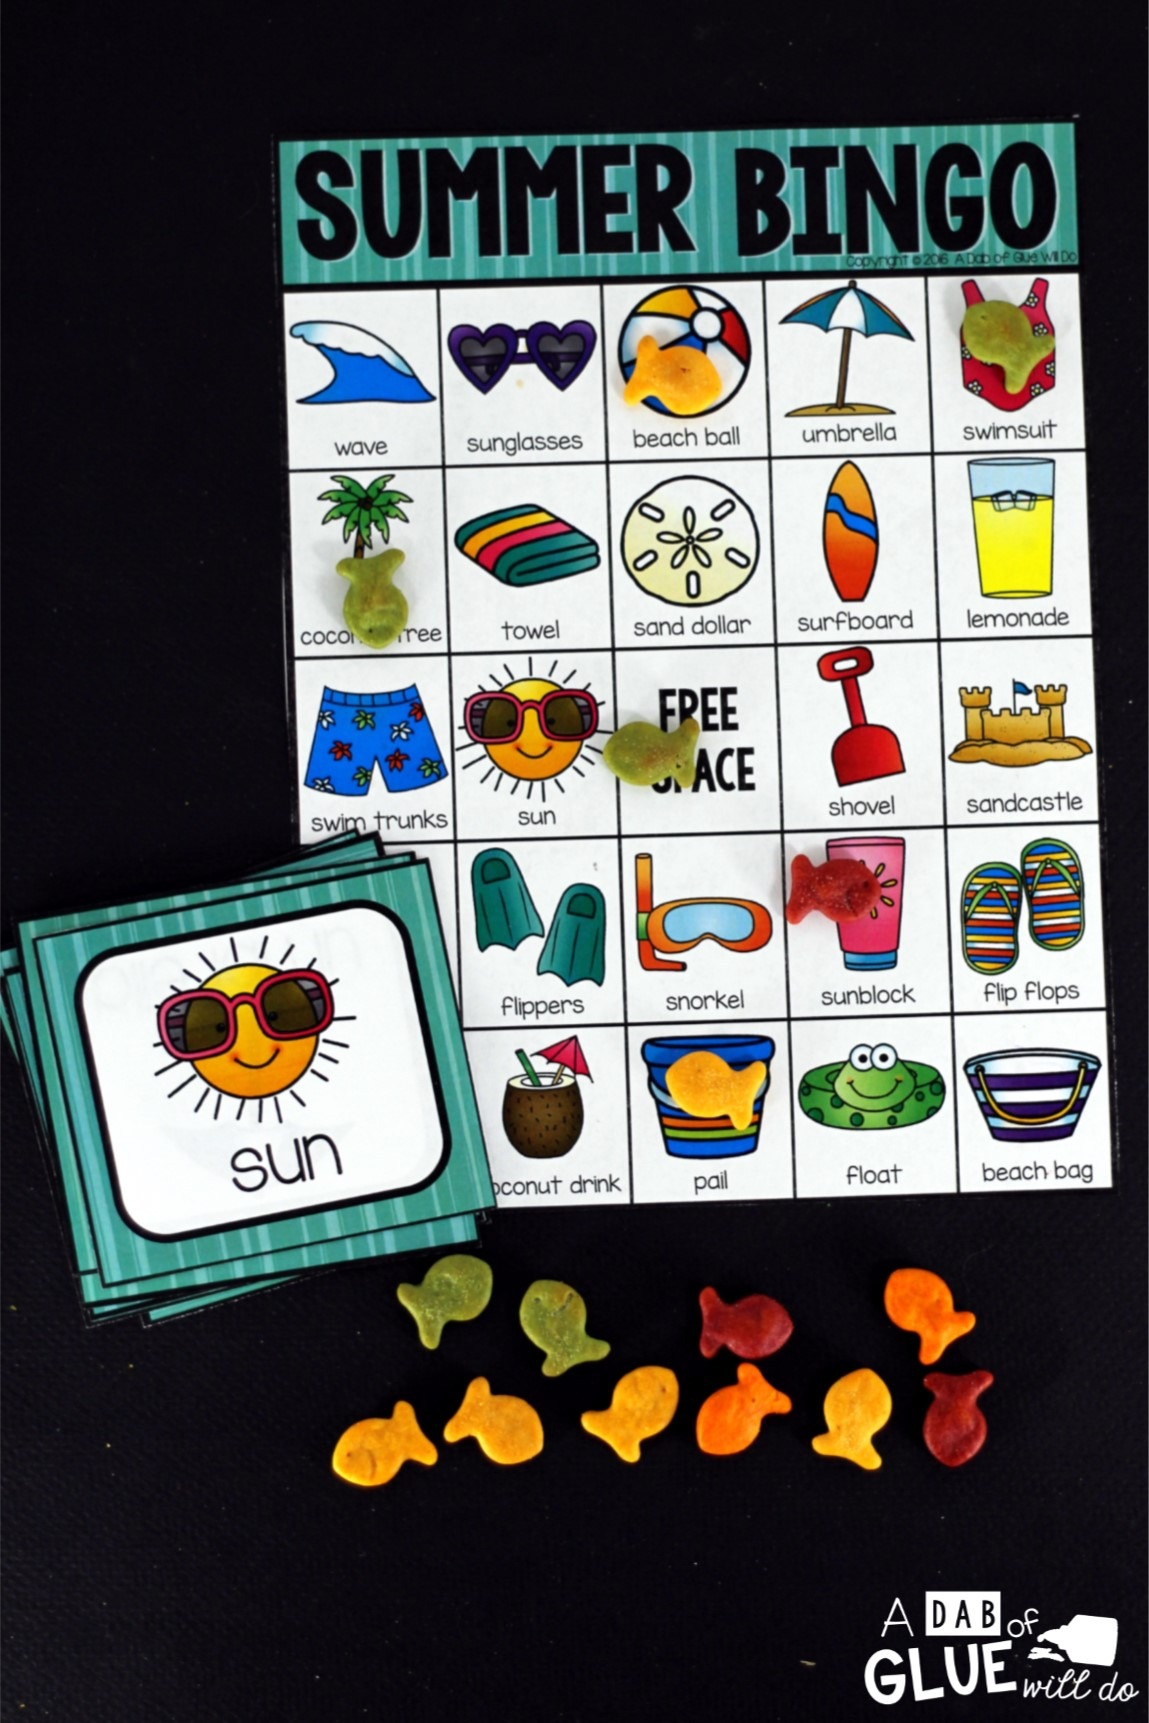 Play Bingo with your elementary age students for a fun summer themed game! Perfect for large groups in your classroom or small review groups. Add this to your summer party with 30 unique summer Bingo boards or end of year celebration with your students! Teaching cards are also included in this fun game for young children! Black and white options available to save your color ink.